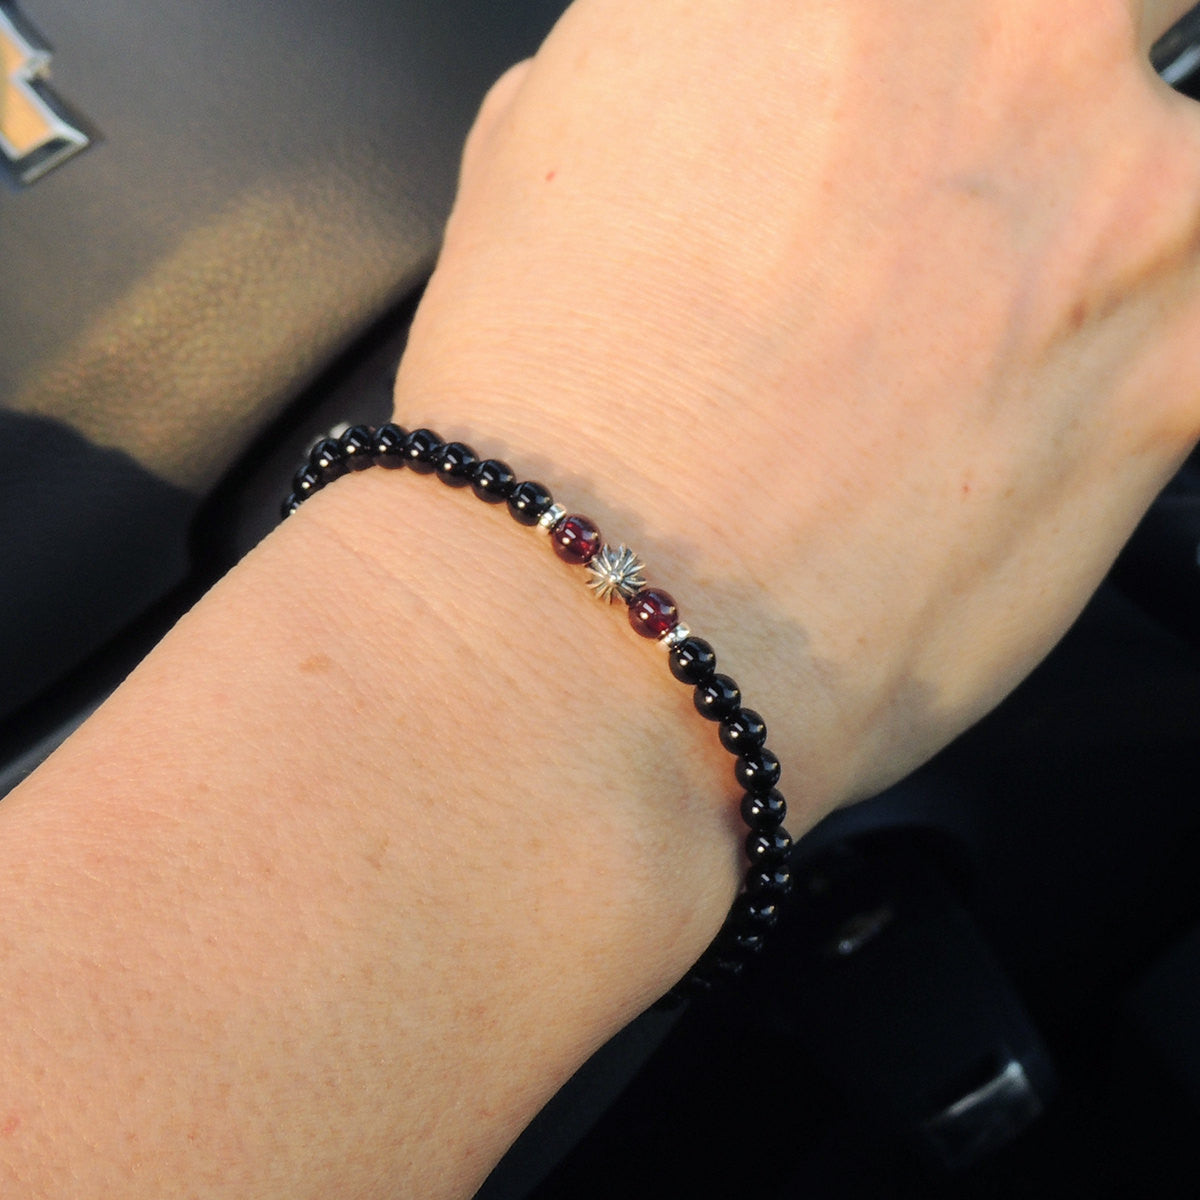 Garnet & Black Onyx Healing Gemstone Bracelet with S925 Sterling Silver Spacers Cross & Clasp - Handmade by Gem & Silver BR650